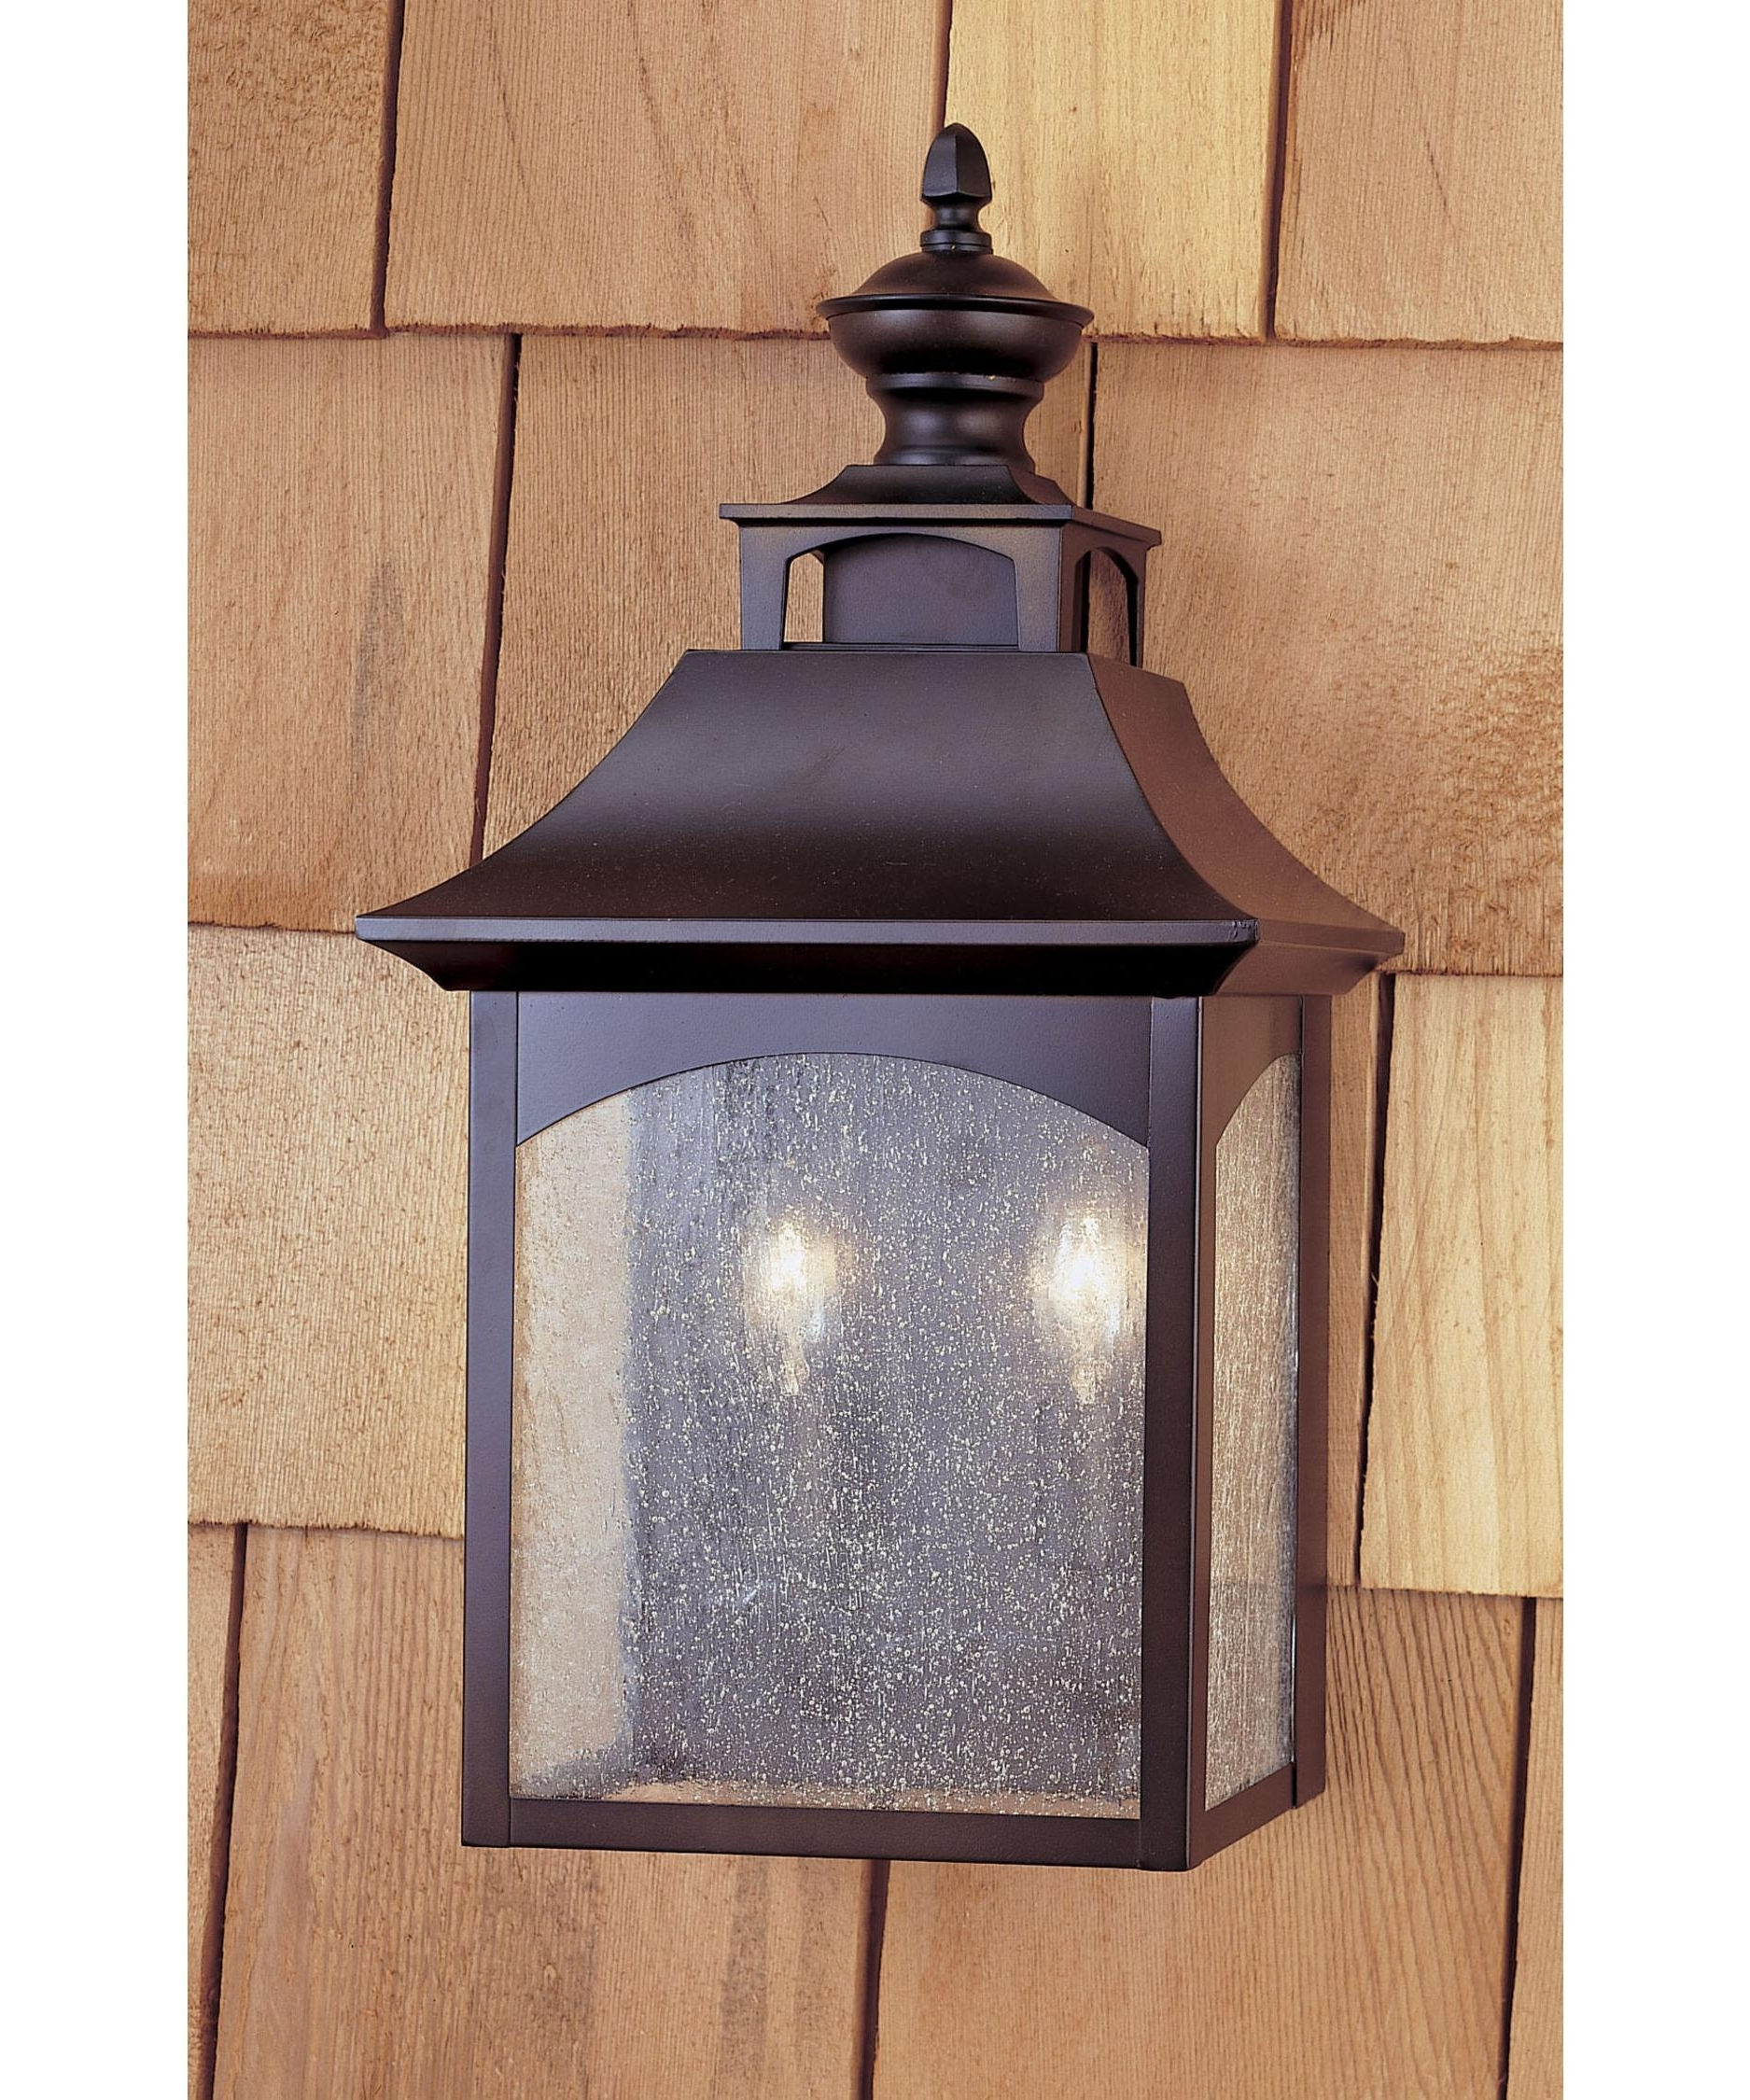 Murray Feiss Ol1003 Homestead 10 Inch Wide 2 Light Outdoor Wall Inside Most Popular Oil Rubbed Bronze Outdoor Wall Lights (View 9 of 20)